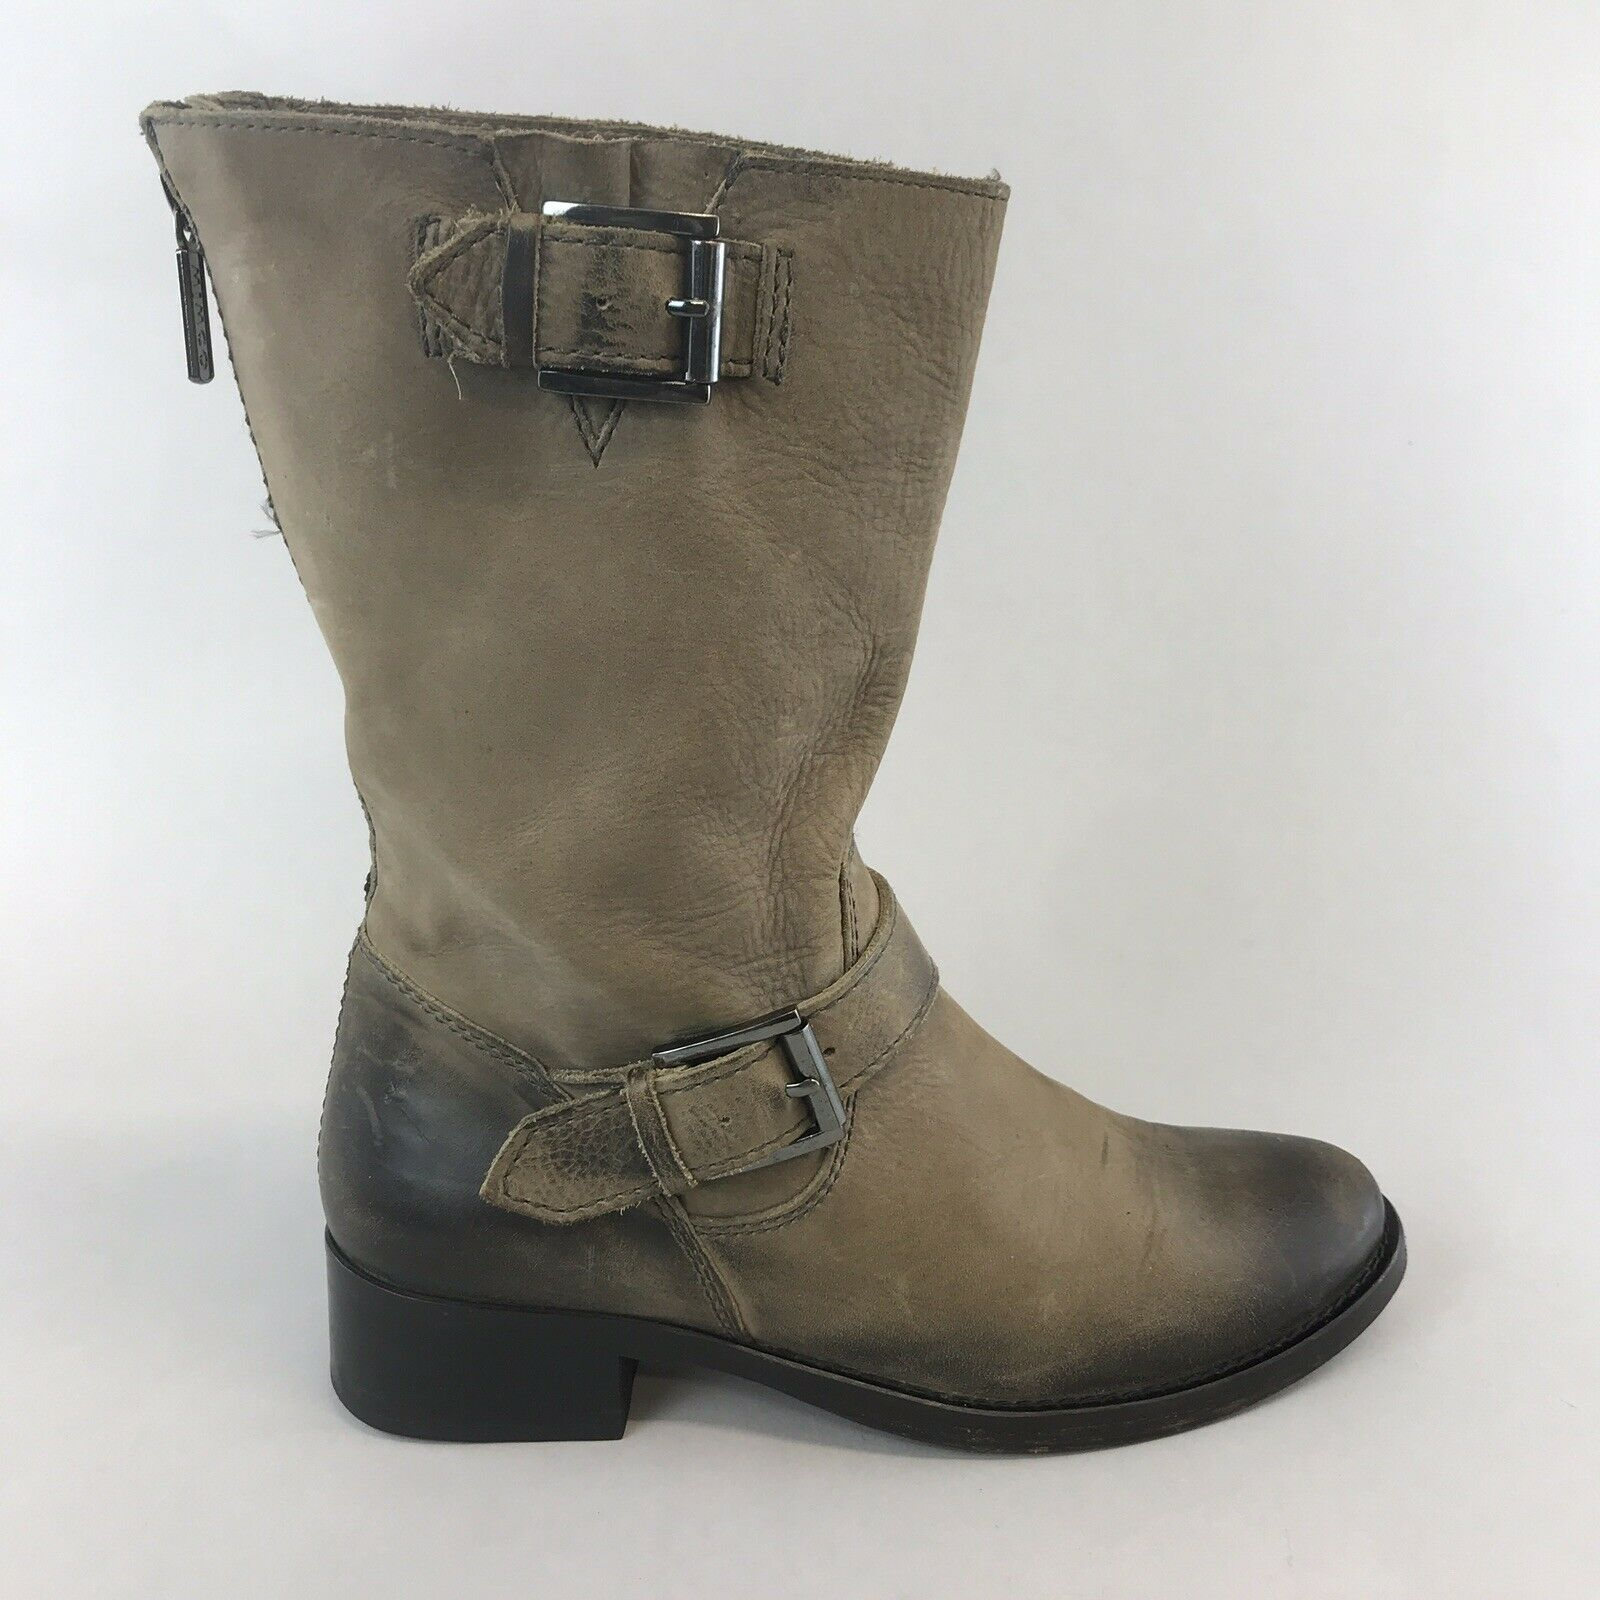 Mimco 37 UK4 Brown Leather Ankle Zip Up Biker Rider Booties Boho Hippies Boots